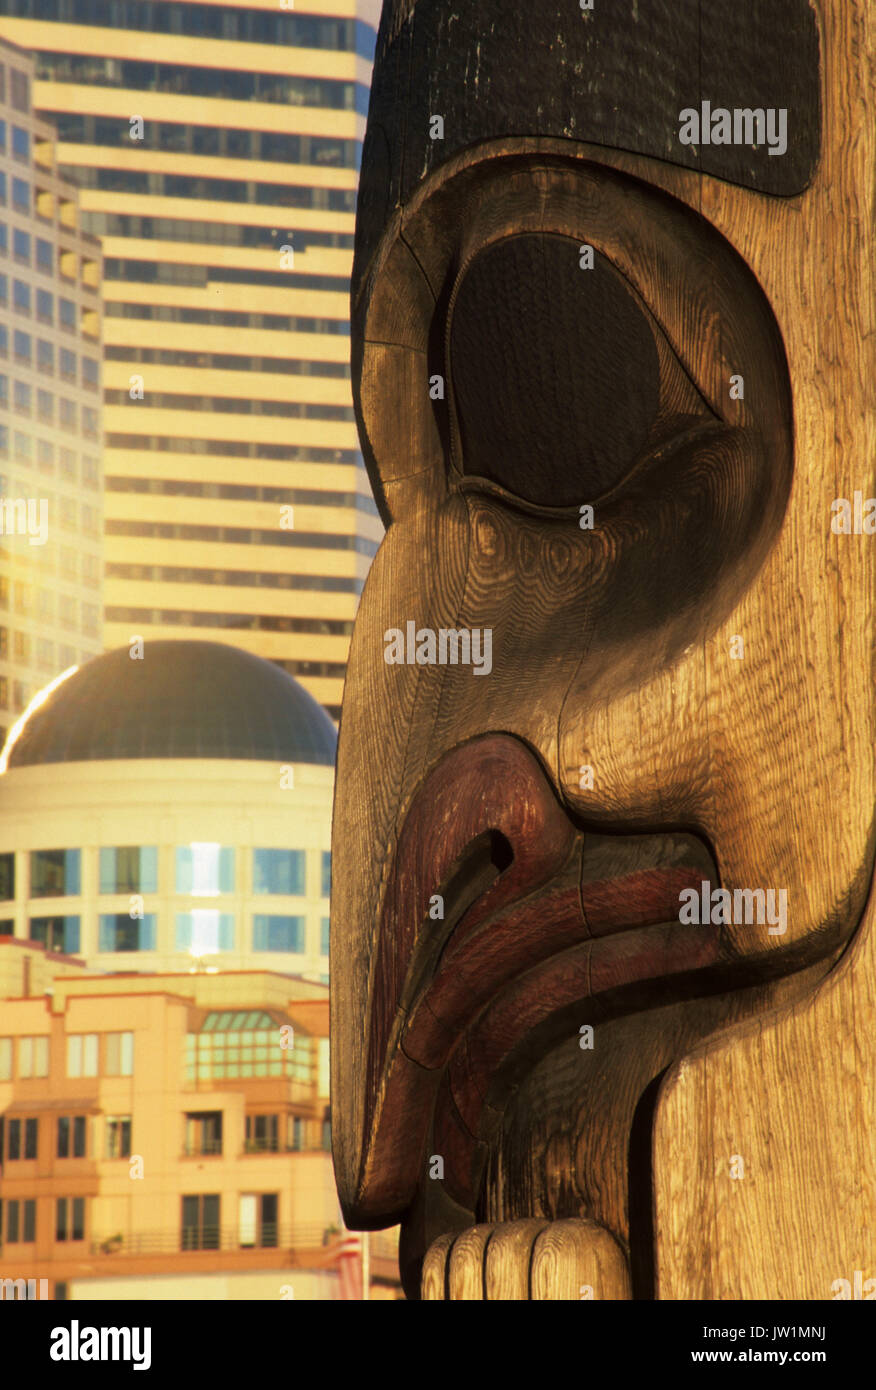 Totem pole with downtown, Victor Steinbrueck Park, Seattle, Washington - Stock Image